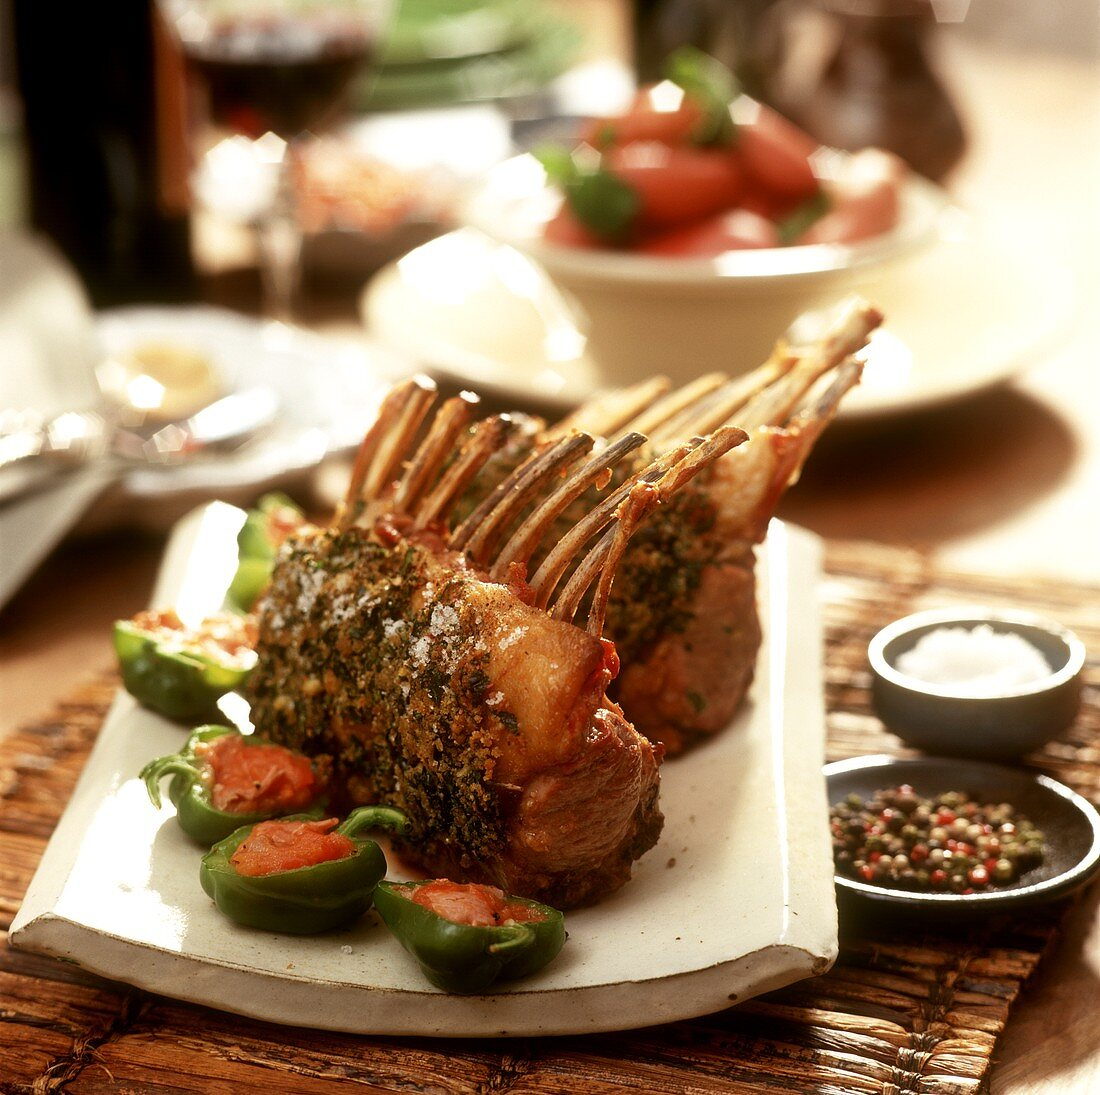 Lamb chop with herb crust and stuffed peppers